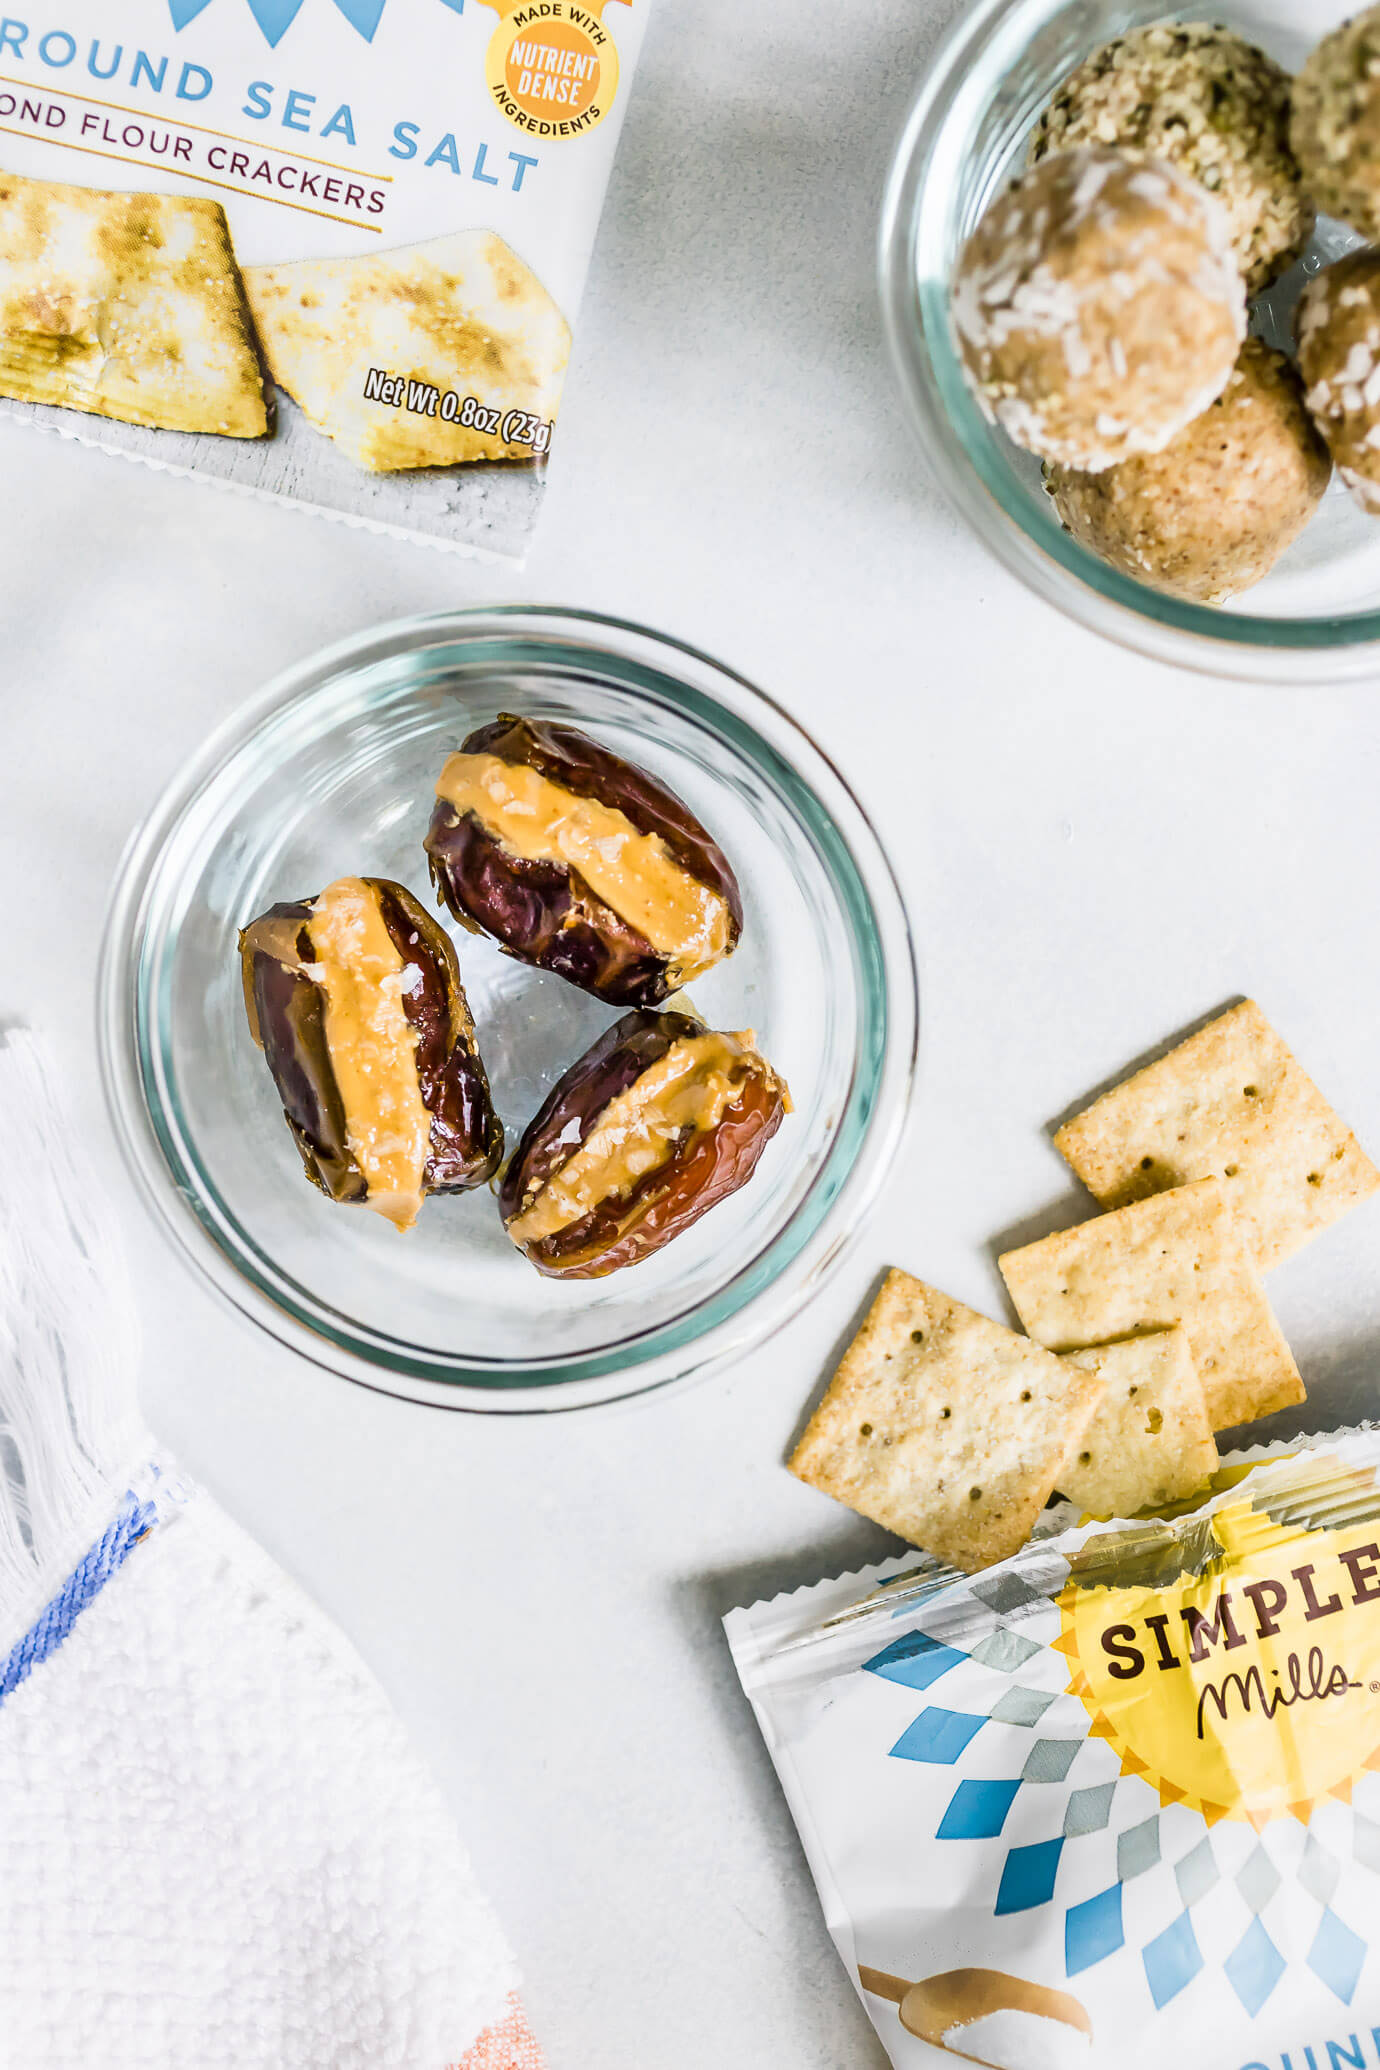 5 Simple Healthy Snacks for Summer featuring Simple Mills Almond Flour Crackers, peanut butter stuffed dates and cashew coconut snack bites